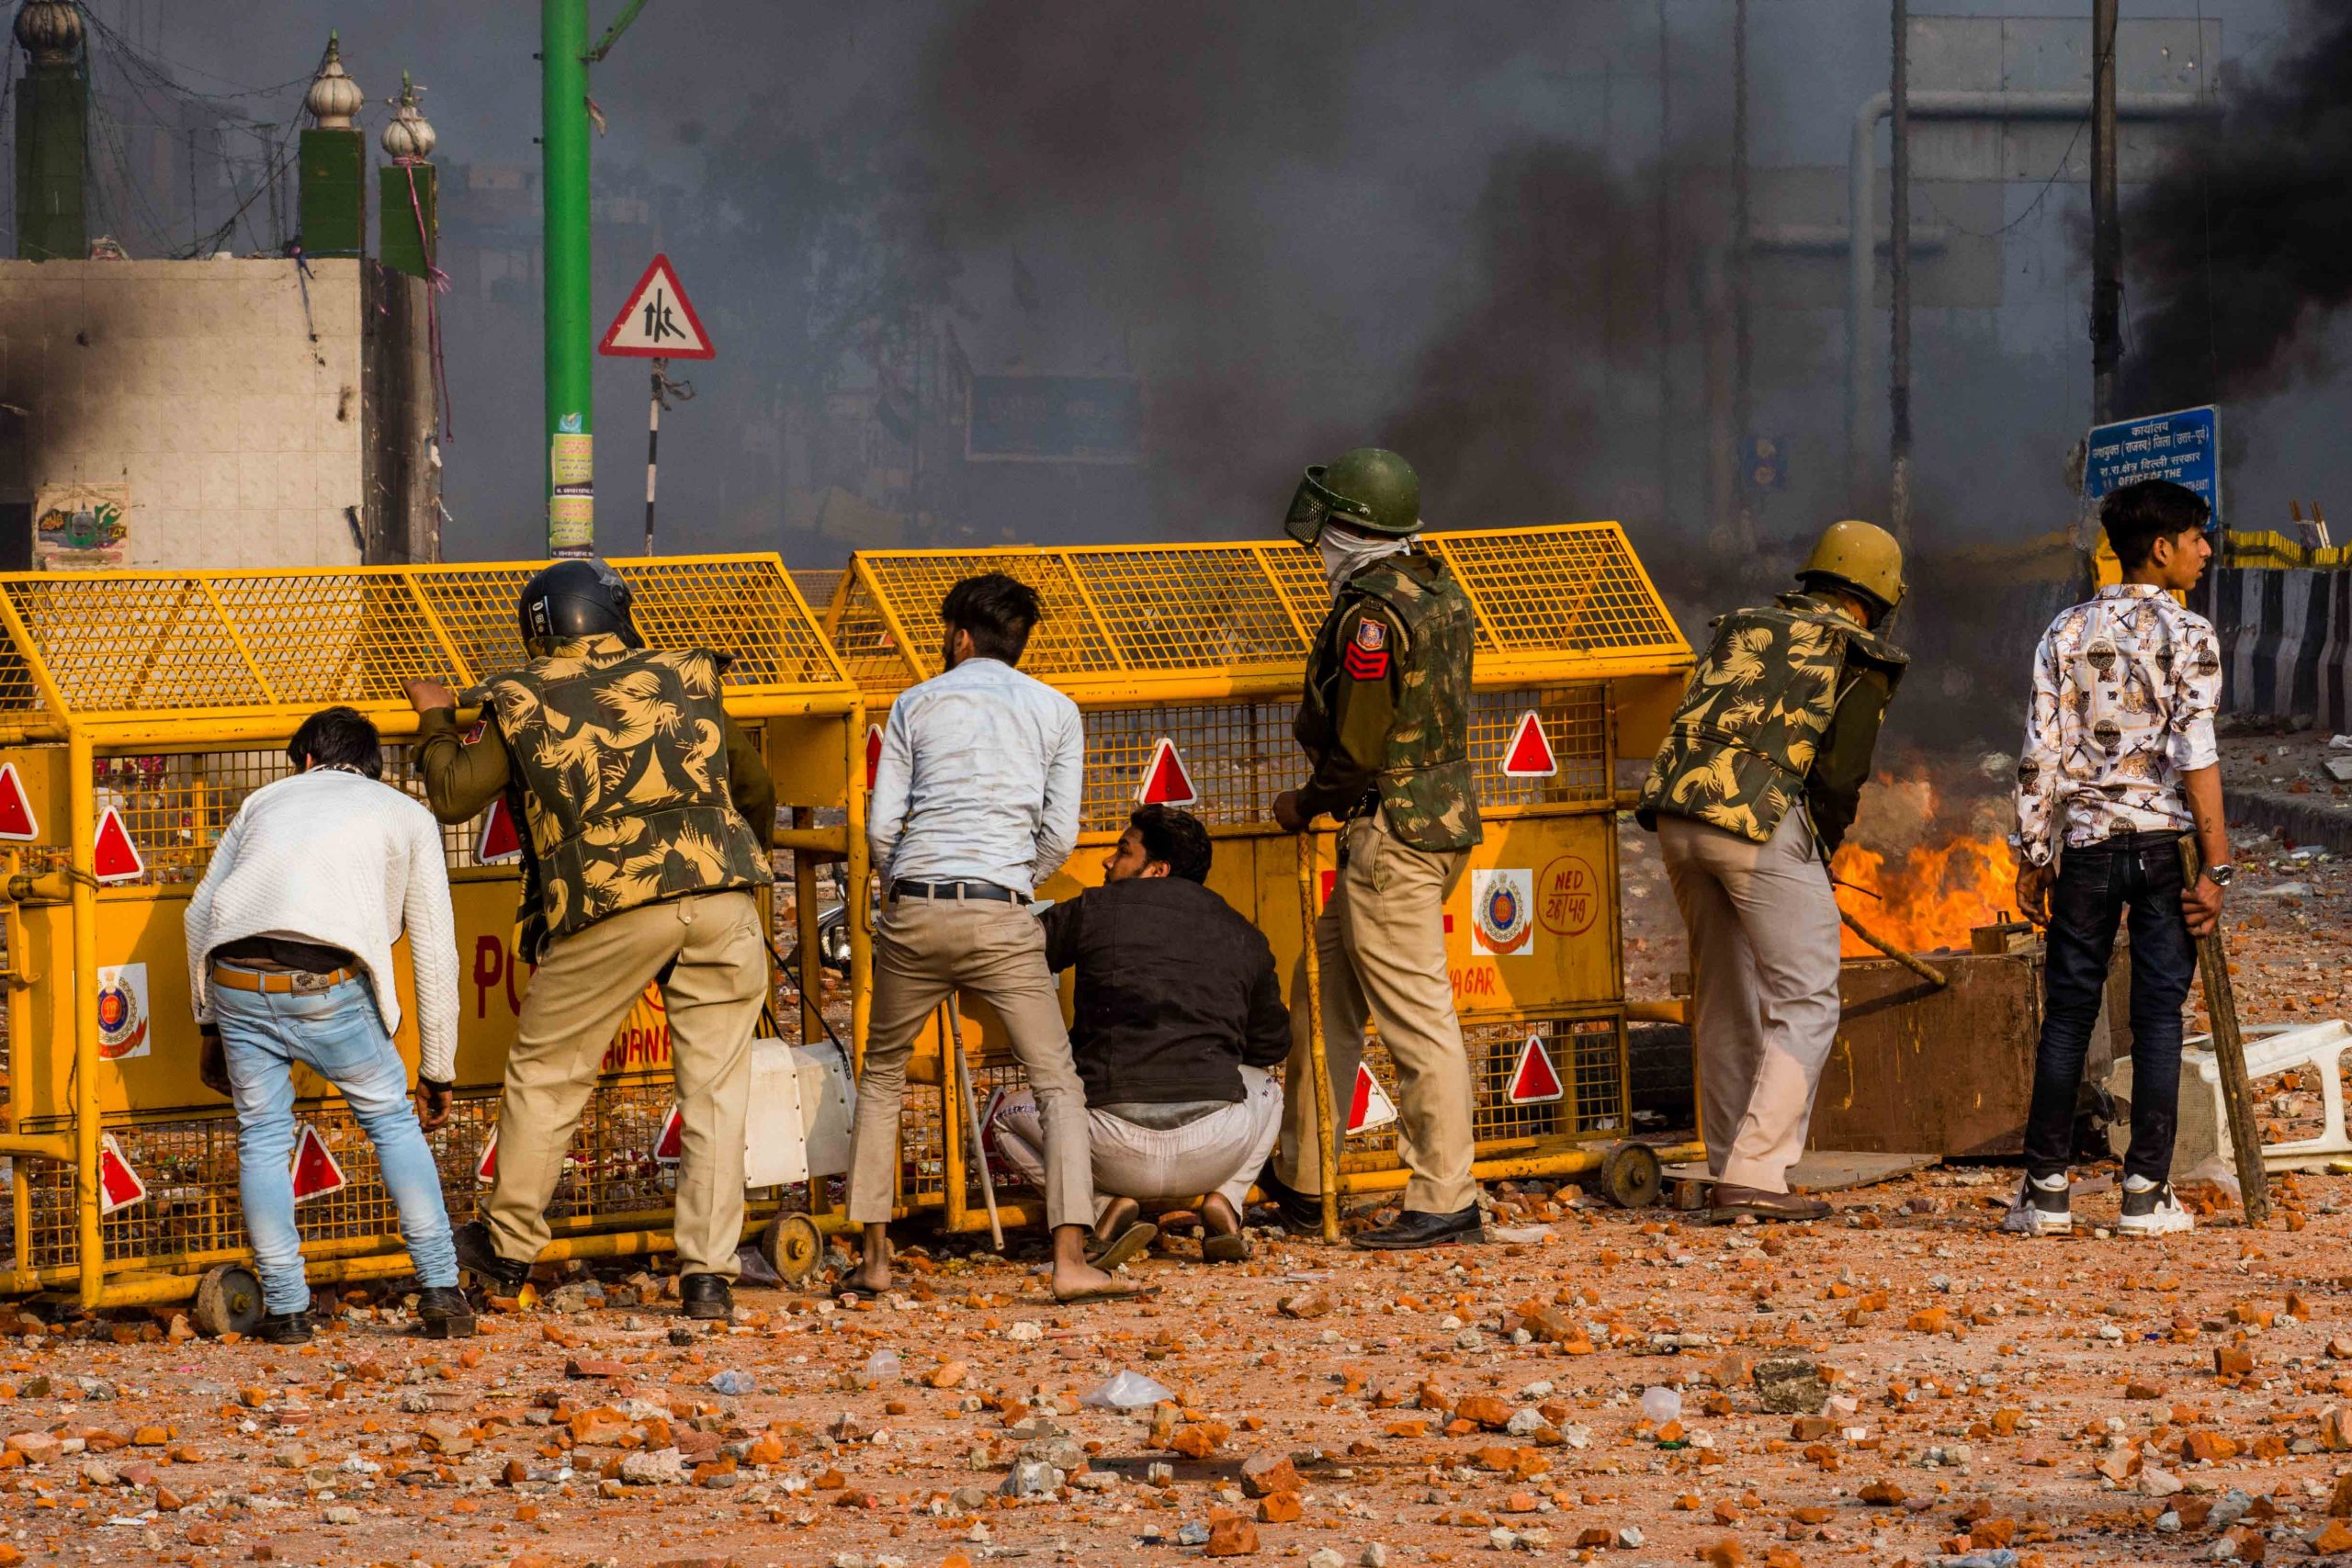 24 February 2020: Indian police officers and supporters of a new citizenship law seek shelter as protesters throw bricks and stones at them during clashes over the Citizenship Amendment Act in New Delhi. The civilian on the far right appears to be the same man on the right of the group attacking Mohammad Zubai (see top photograph), suggesting that they may have been working with the police. (Photograph by Yawar Nazir/Getty Images)